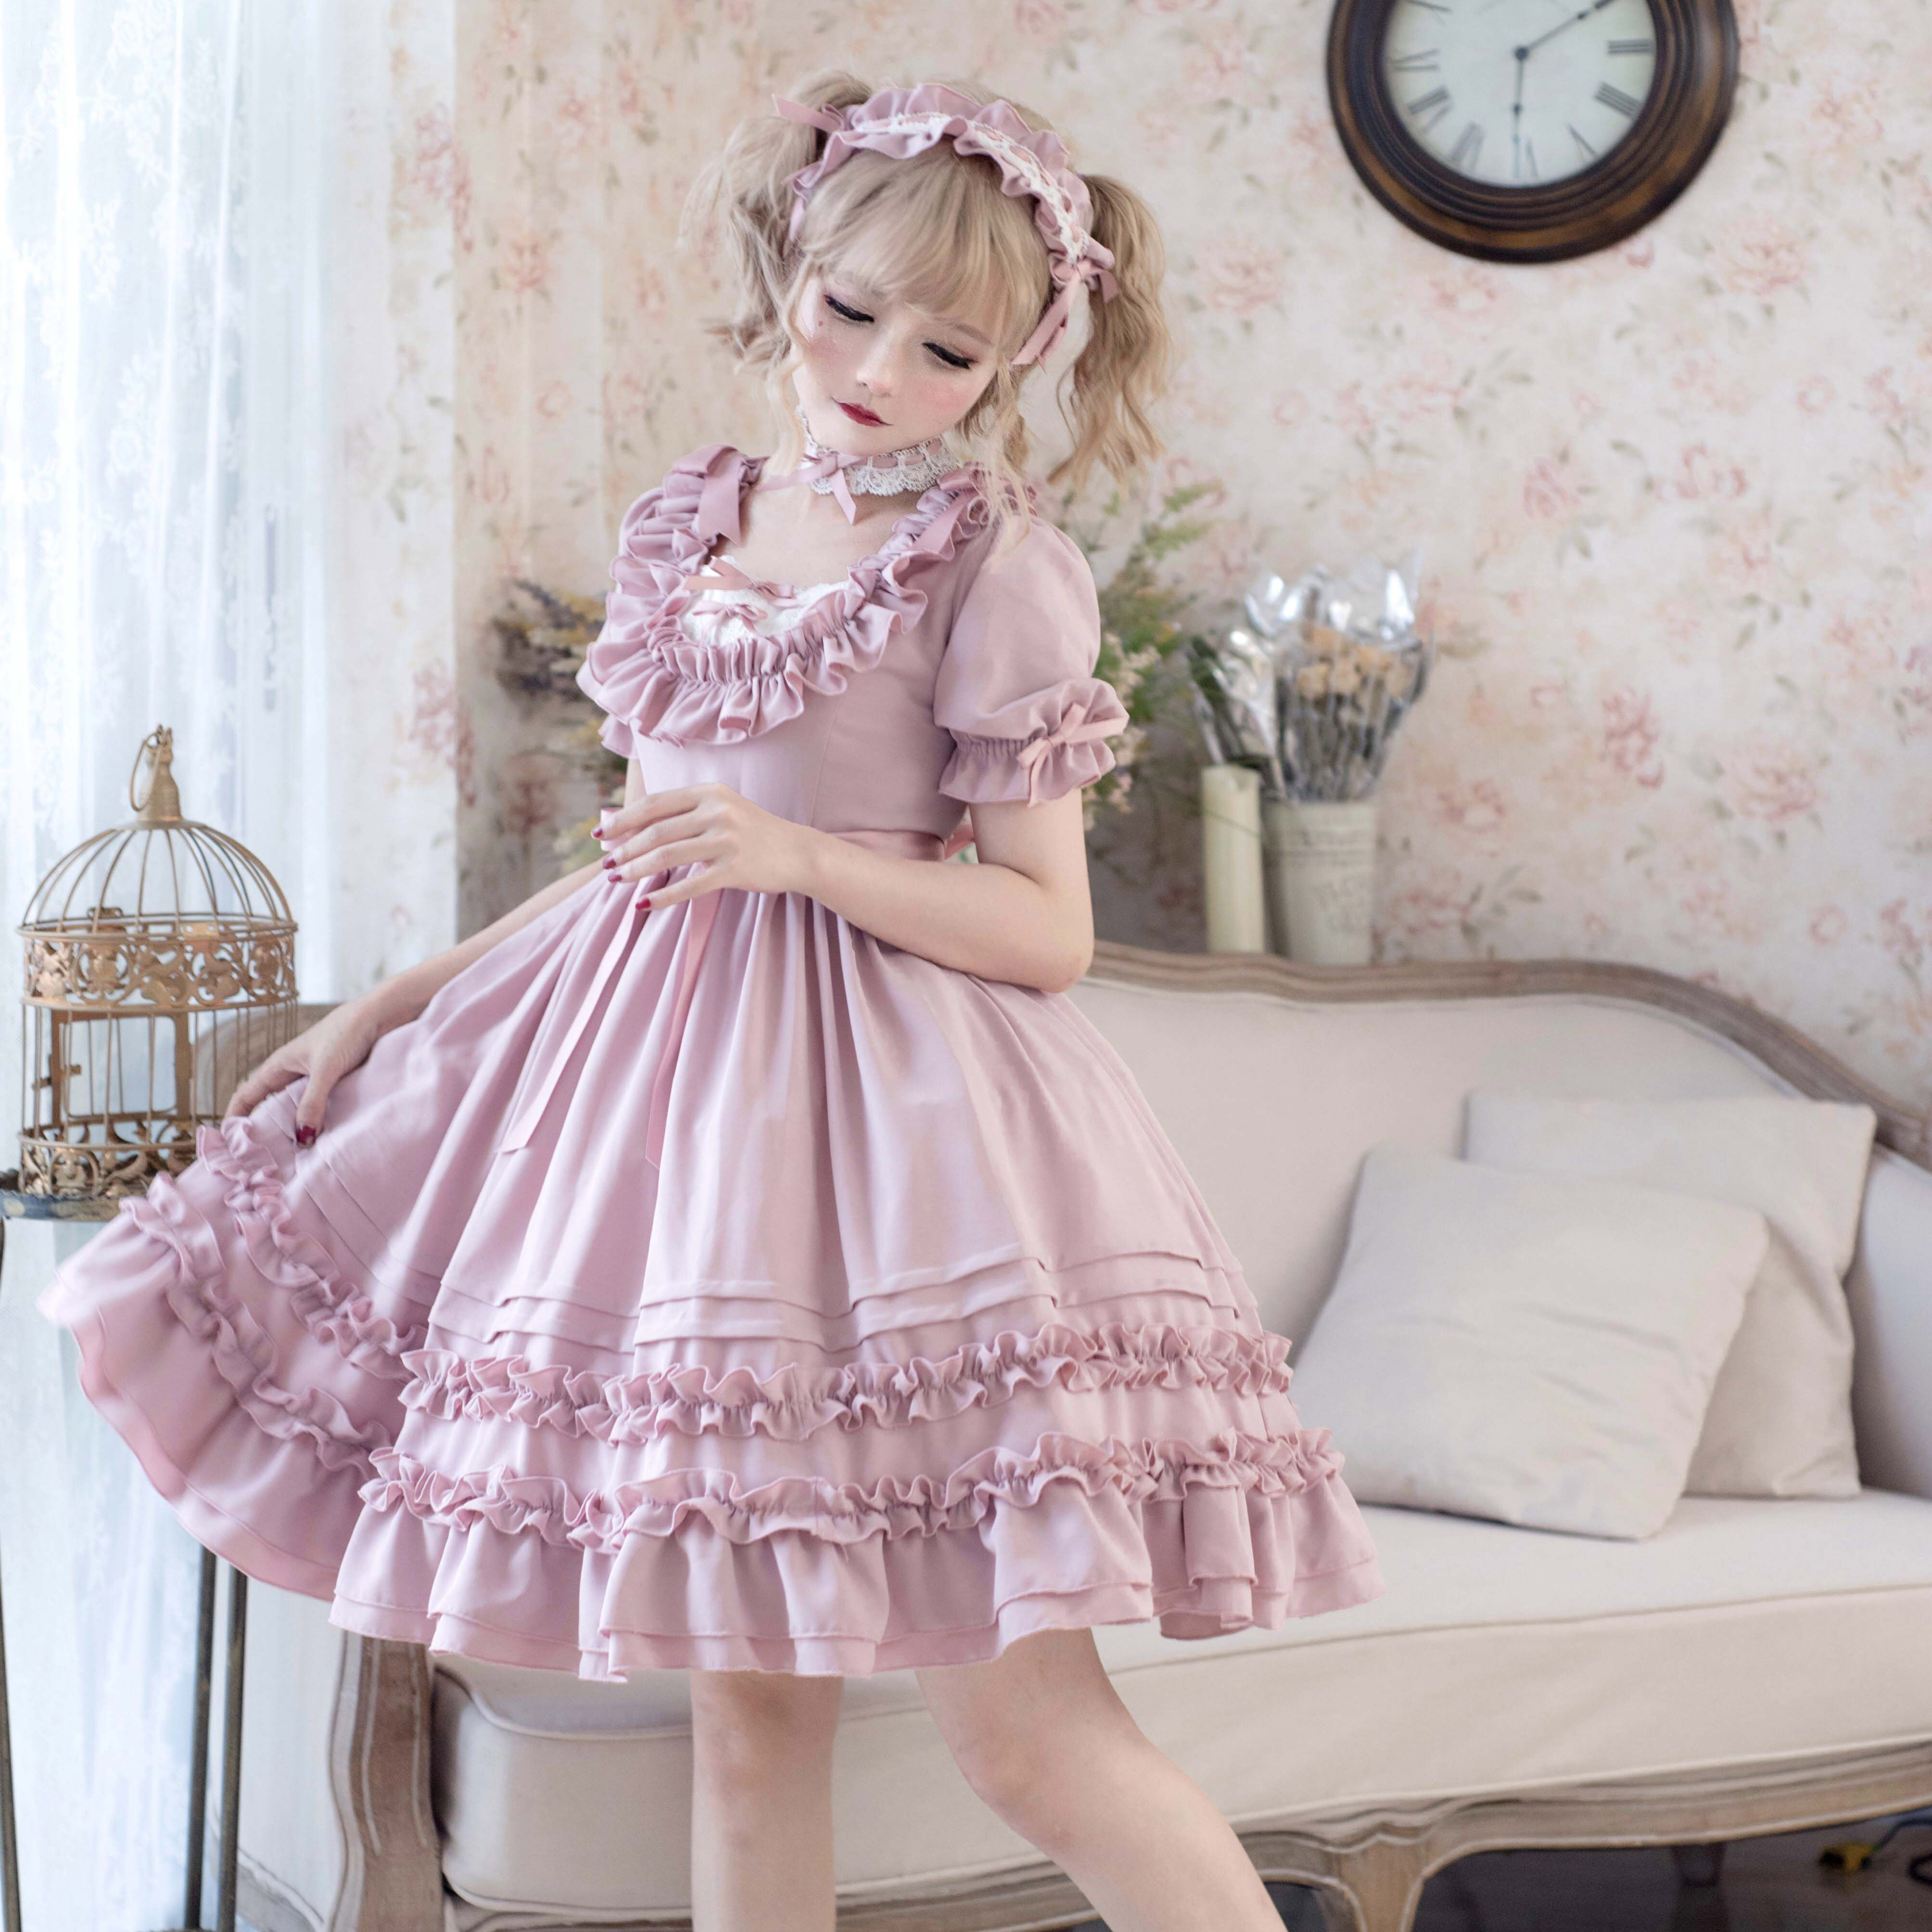 Rabbit and baabaabaa song of time three chapters lovely daily original Lolita Lolita short sleeve OP small things in stock